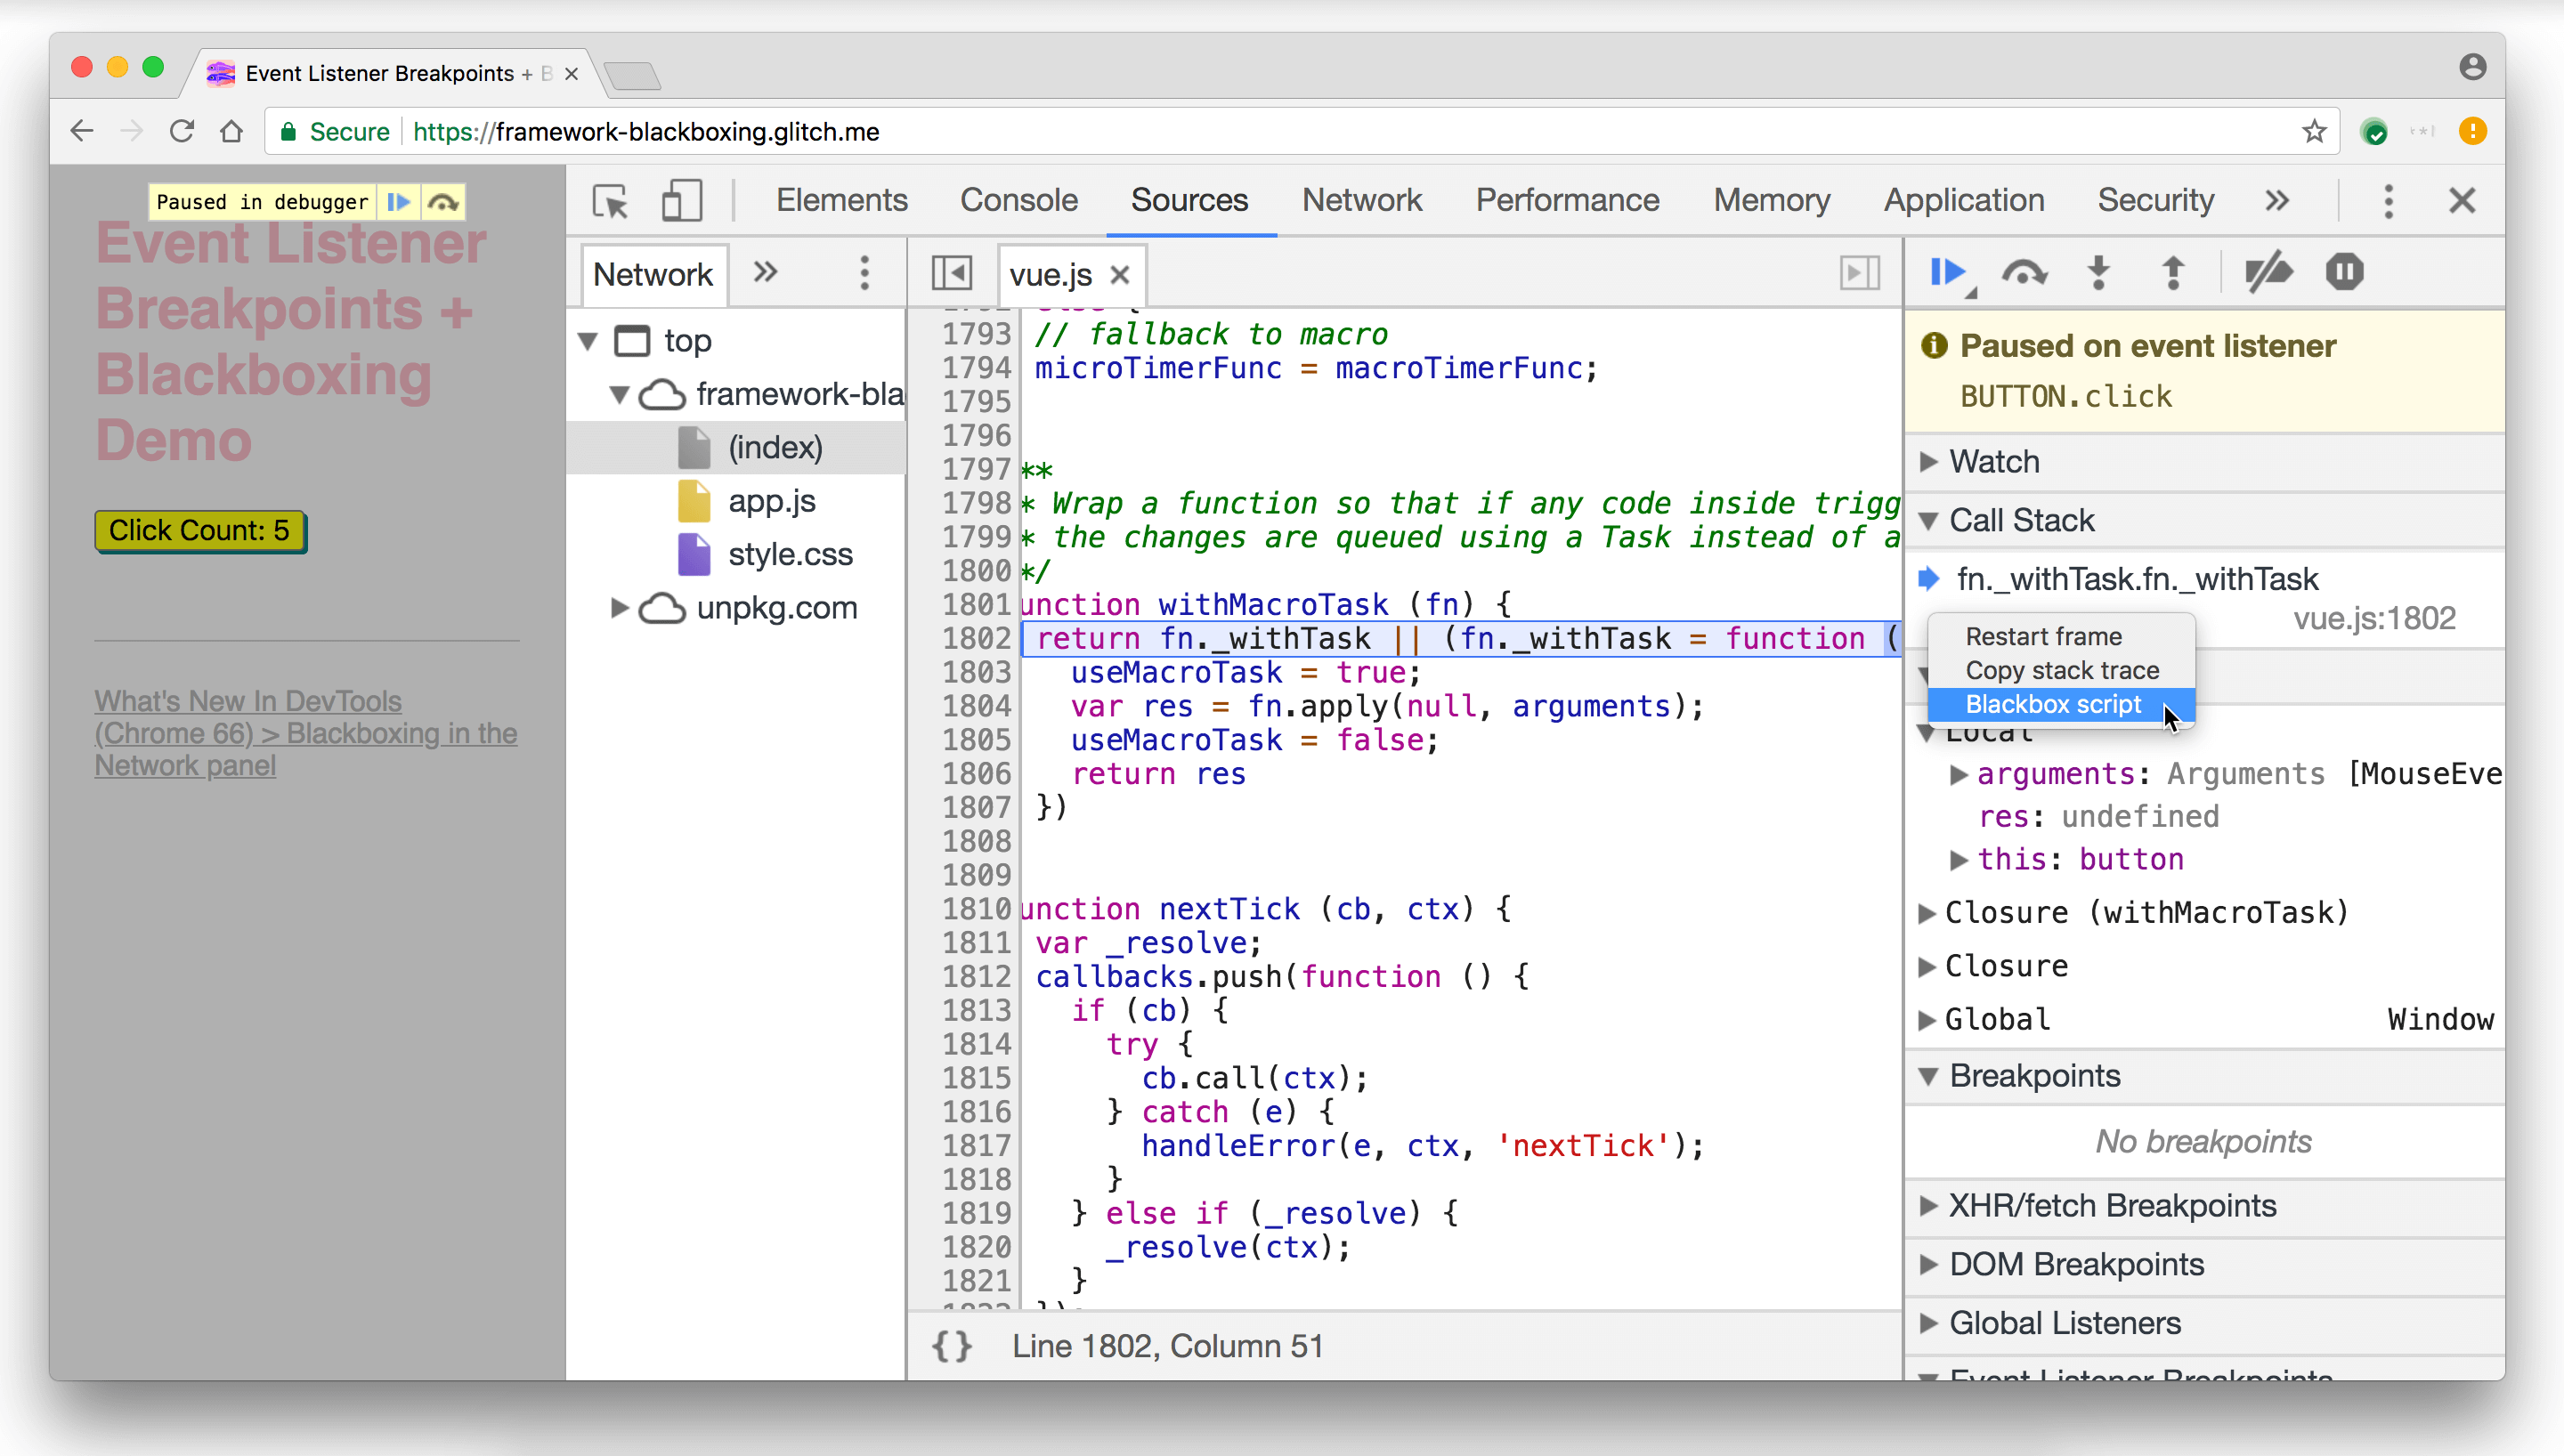 Blackboxing the Vue.js script from the Call Stack pane.